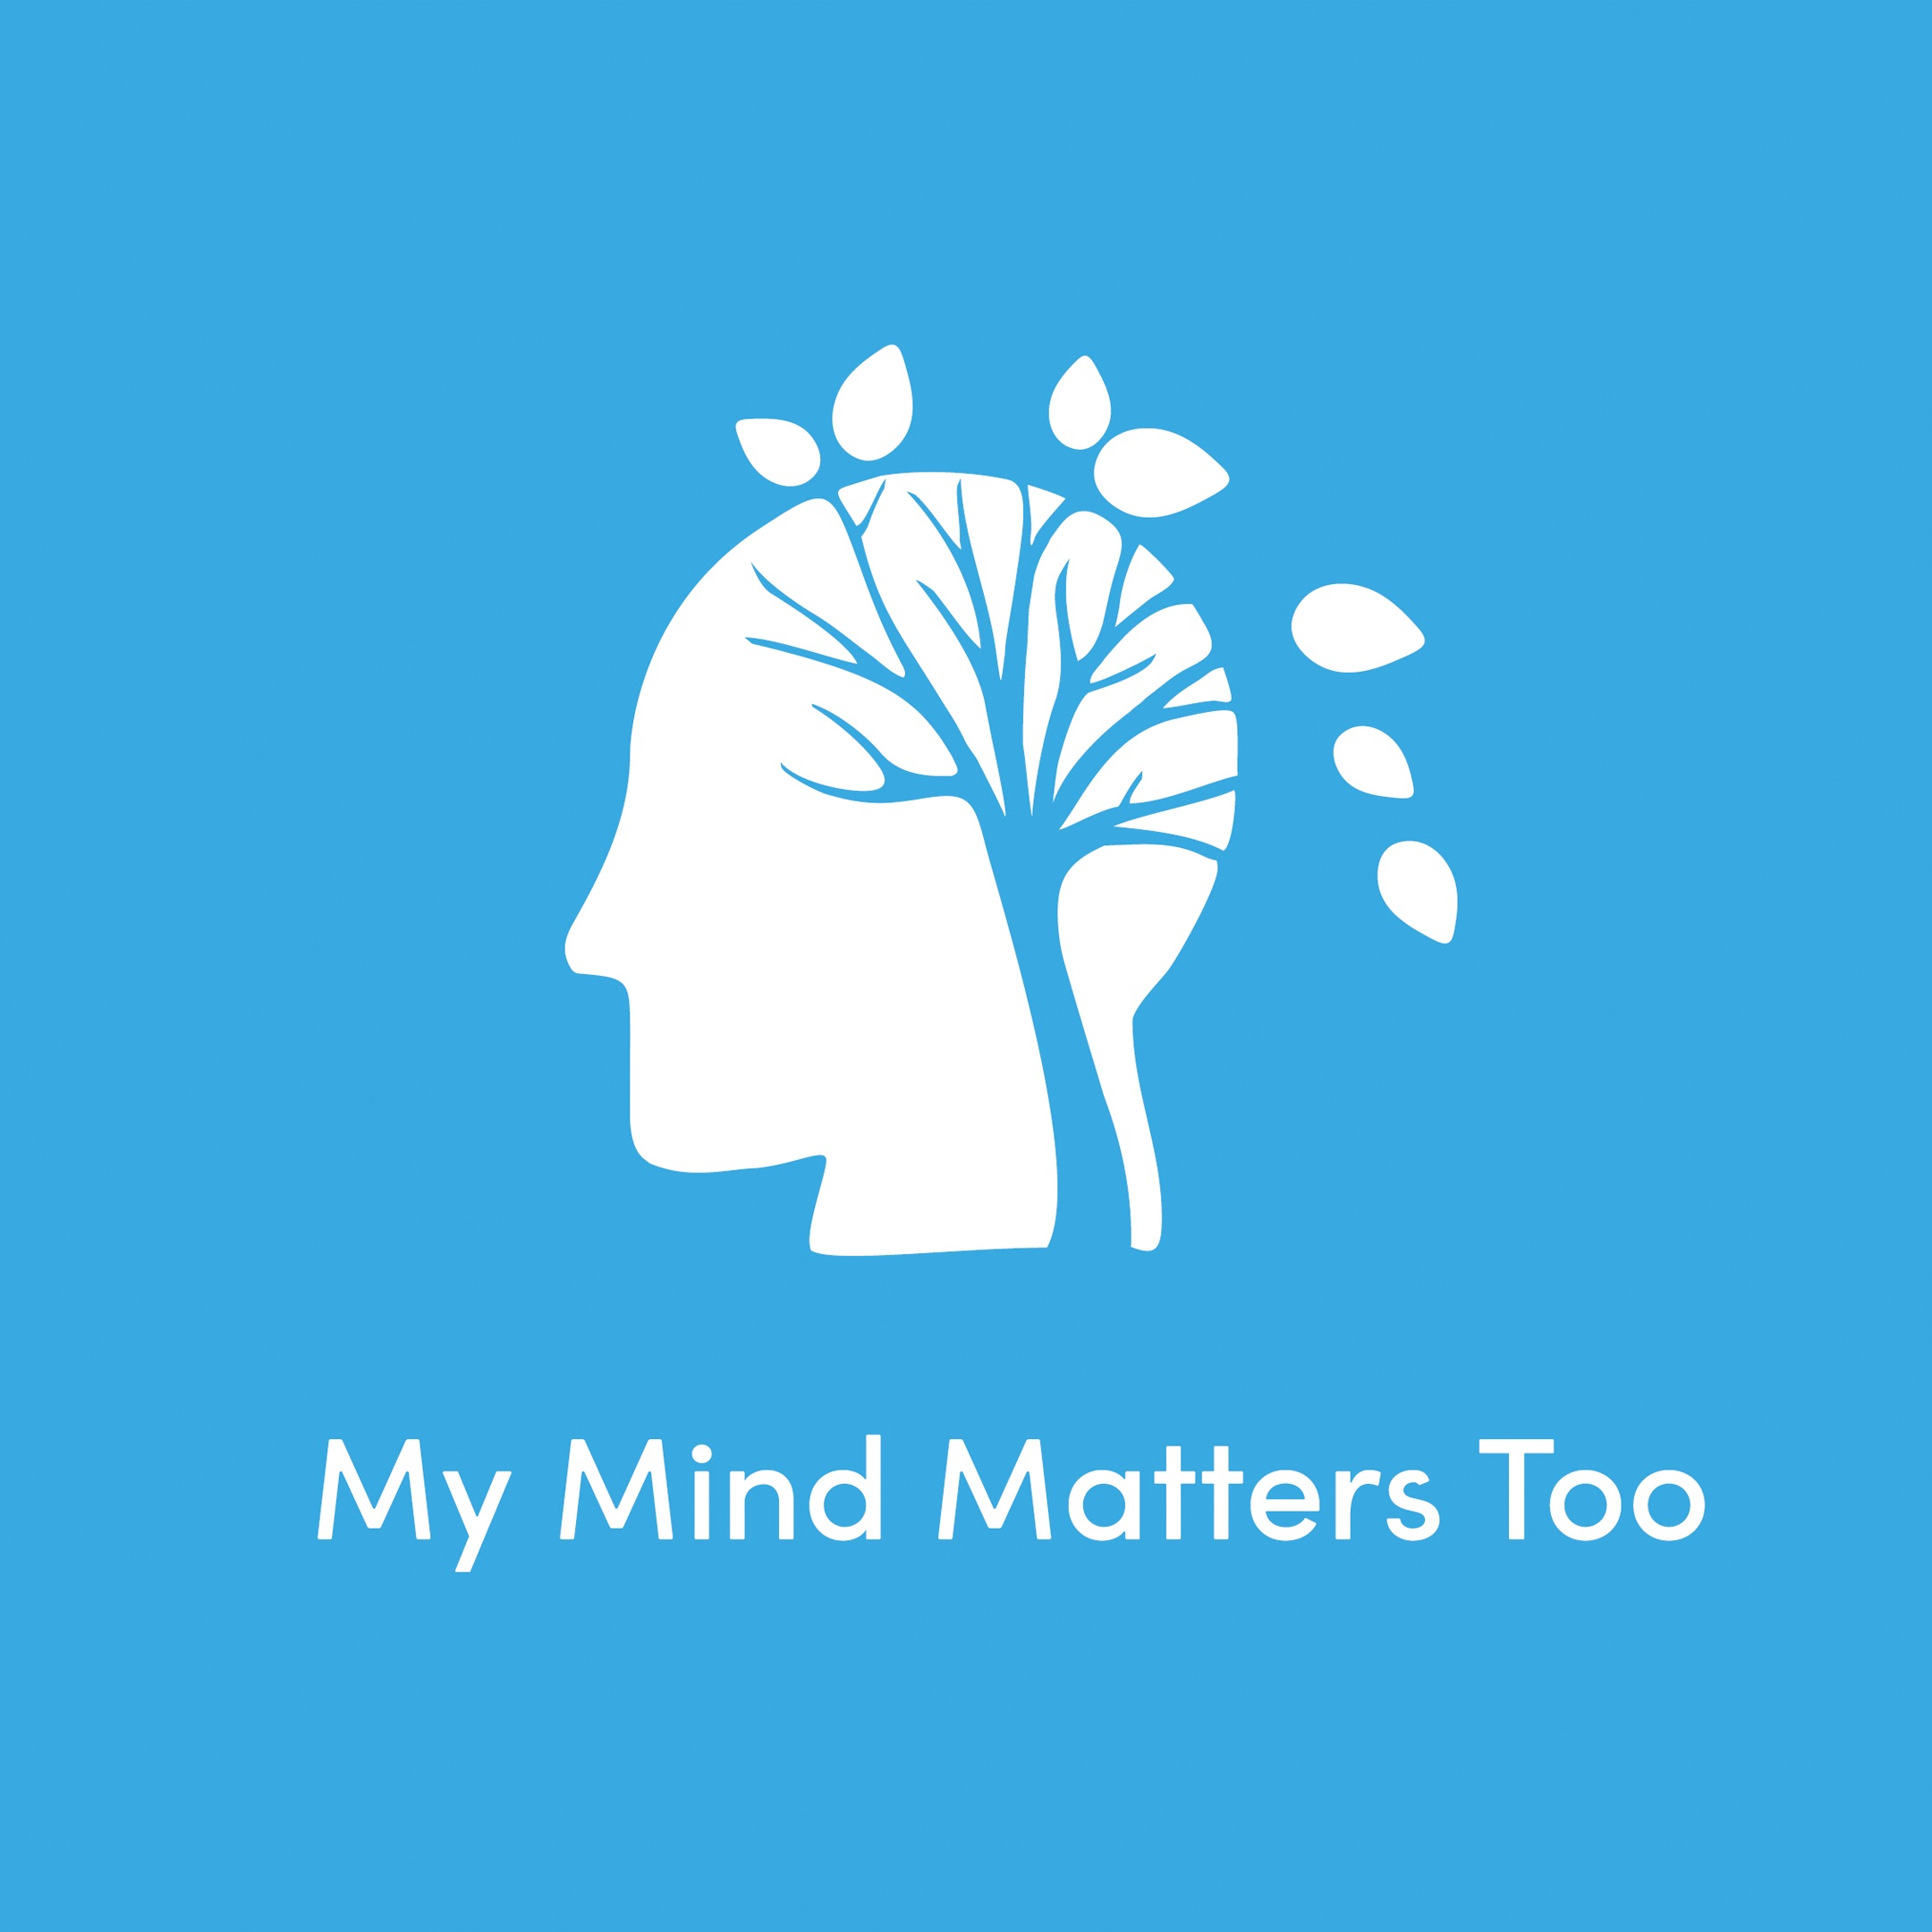 My Mind Matters Too logo